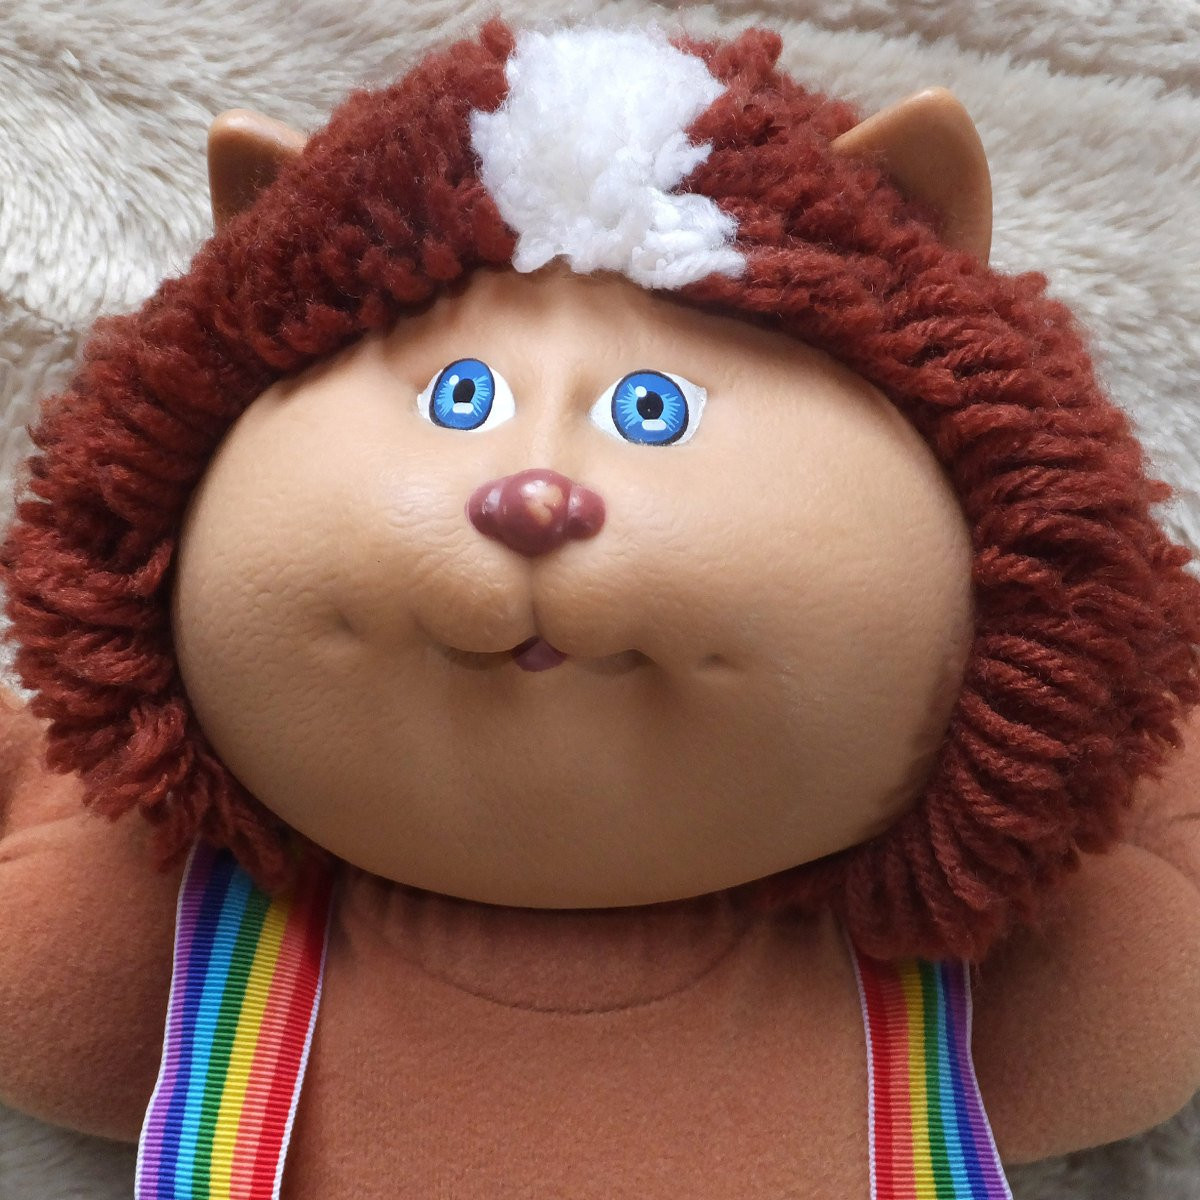 Awesome Cabbage Patch Doll Koosas 1983 Cabbage Patch Doll Prices Of Innovative 49 Models Cabbage Patch Doll Prices